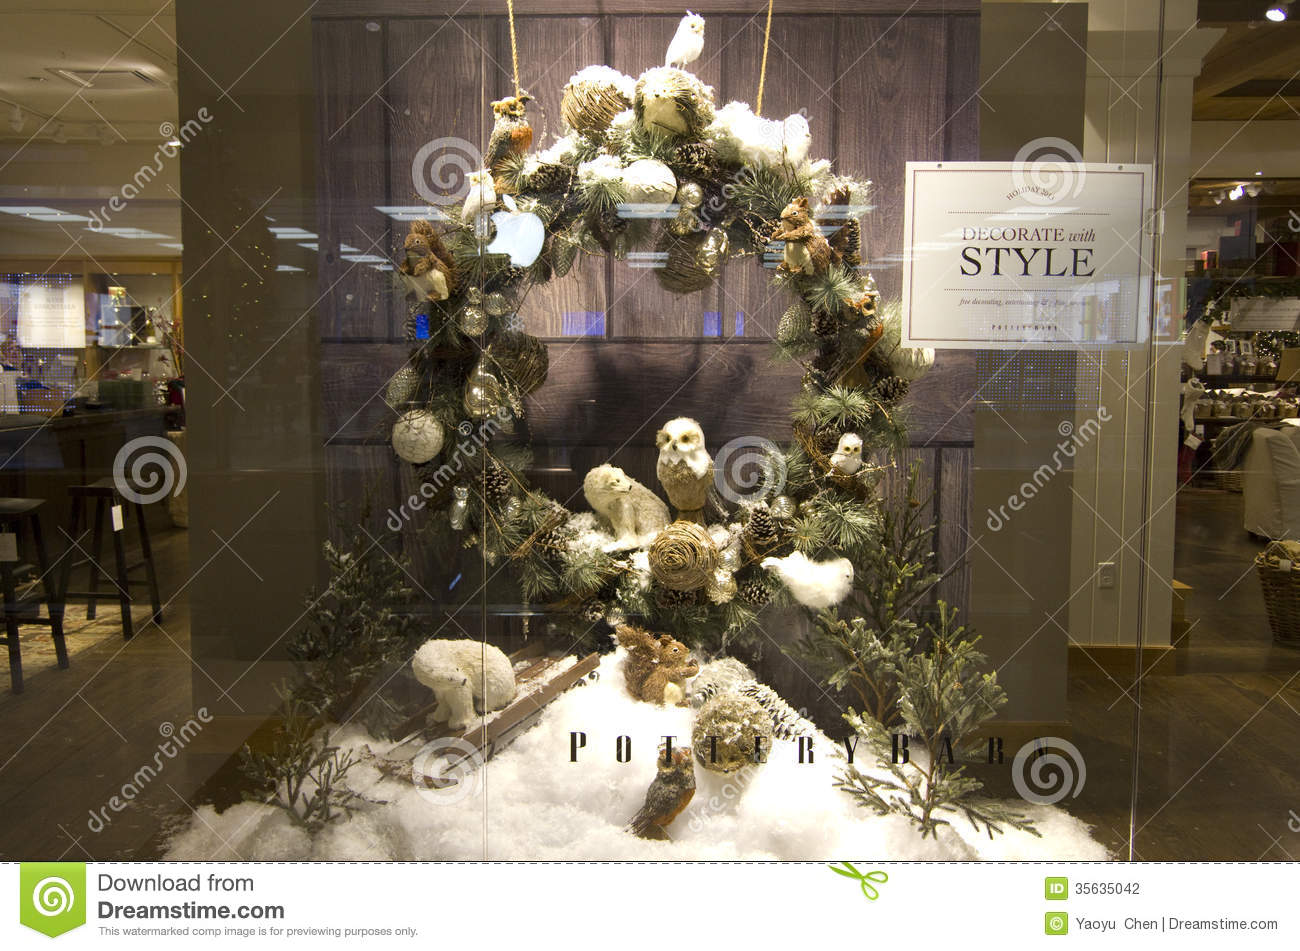 Thanksgiving Christmas Decorations Home Deco Store Window Editorial